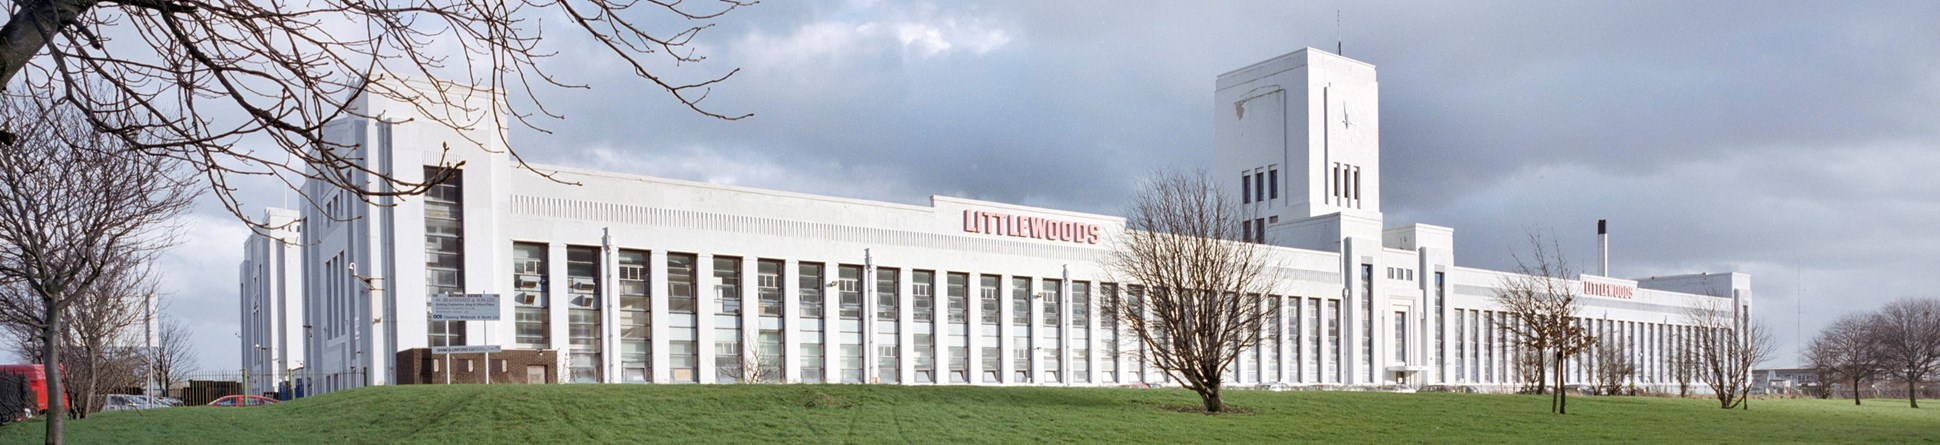 The front of the Littlewoods Pools building photographed in 2002.